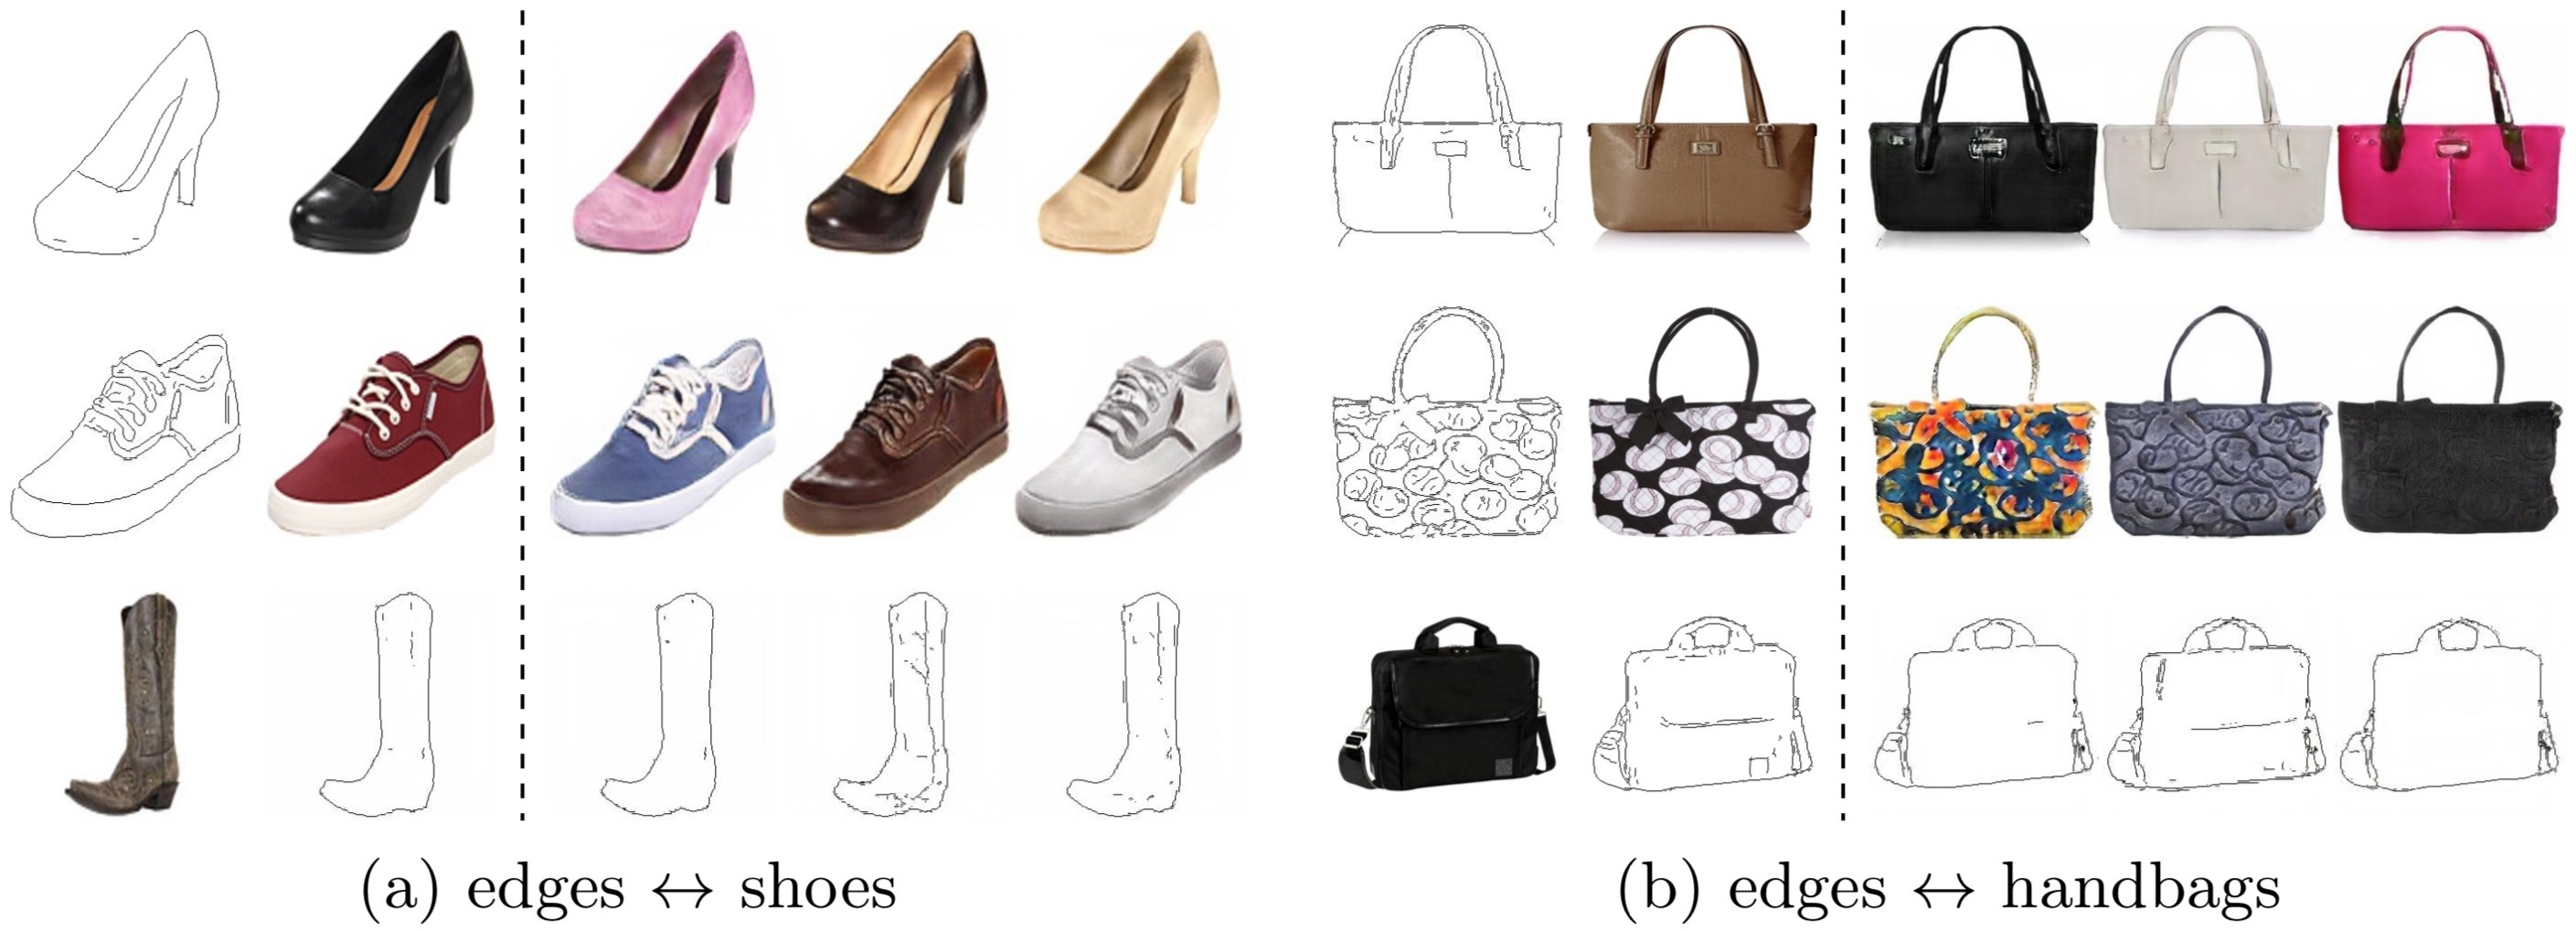 edges2shoes_handbags